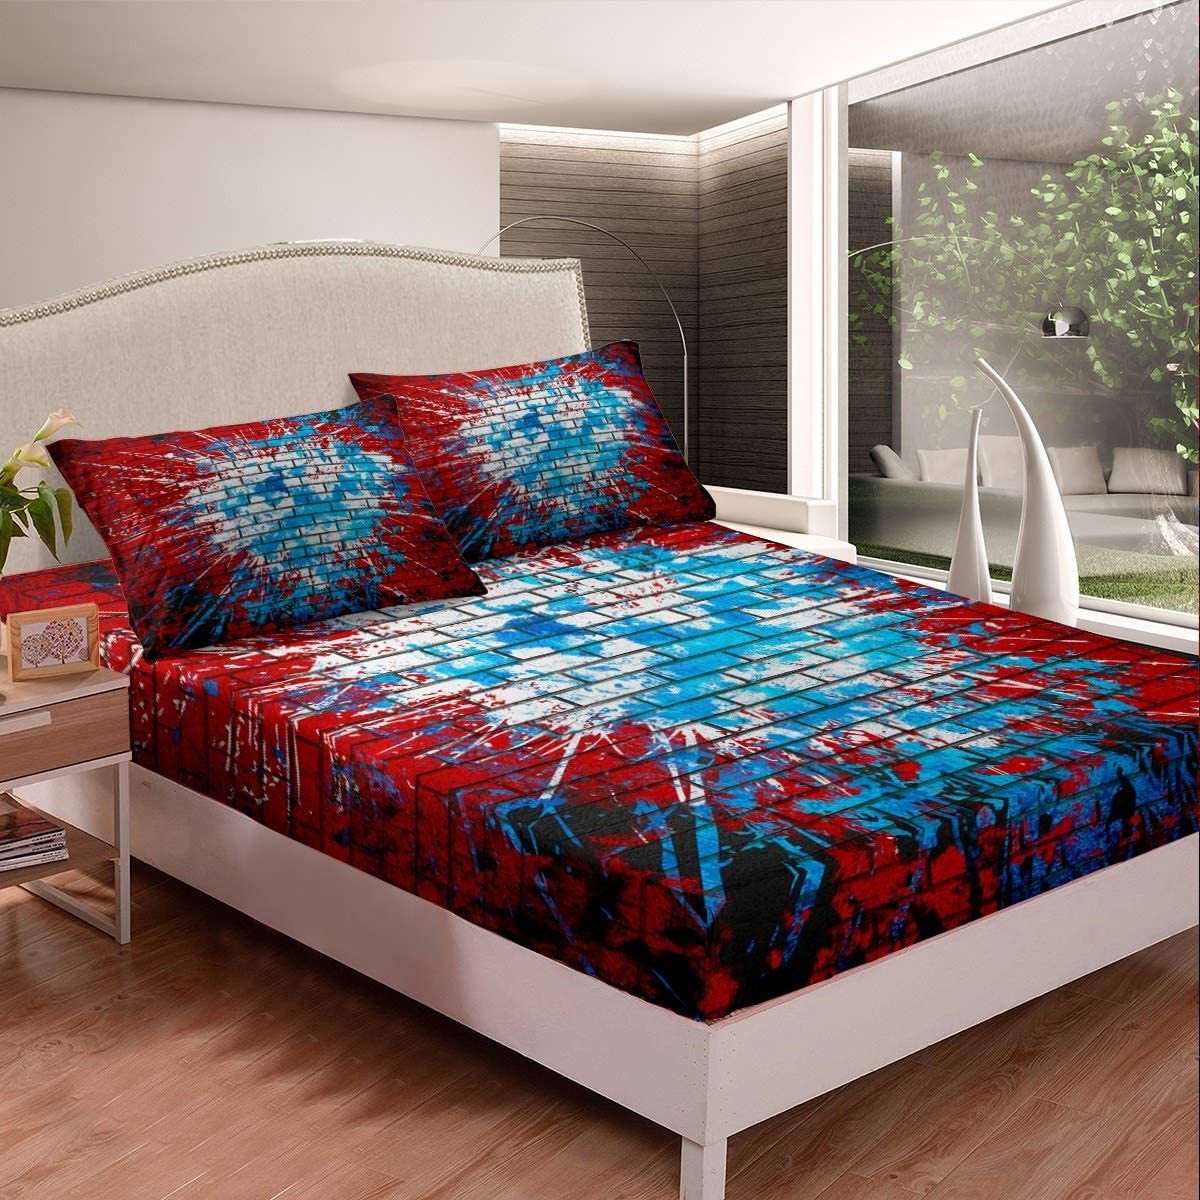 Hip Hop Decor Bedding Set Graffiti Brick Wall Bed Sheets for Kids Boys Girls Street Culture Theme Bed Sheet Set Red Blue Tie Dye Fitted Sheet Bedroom Collection 3Pcs Full Size